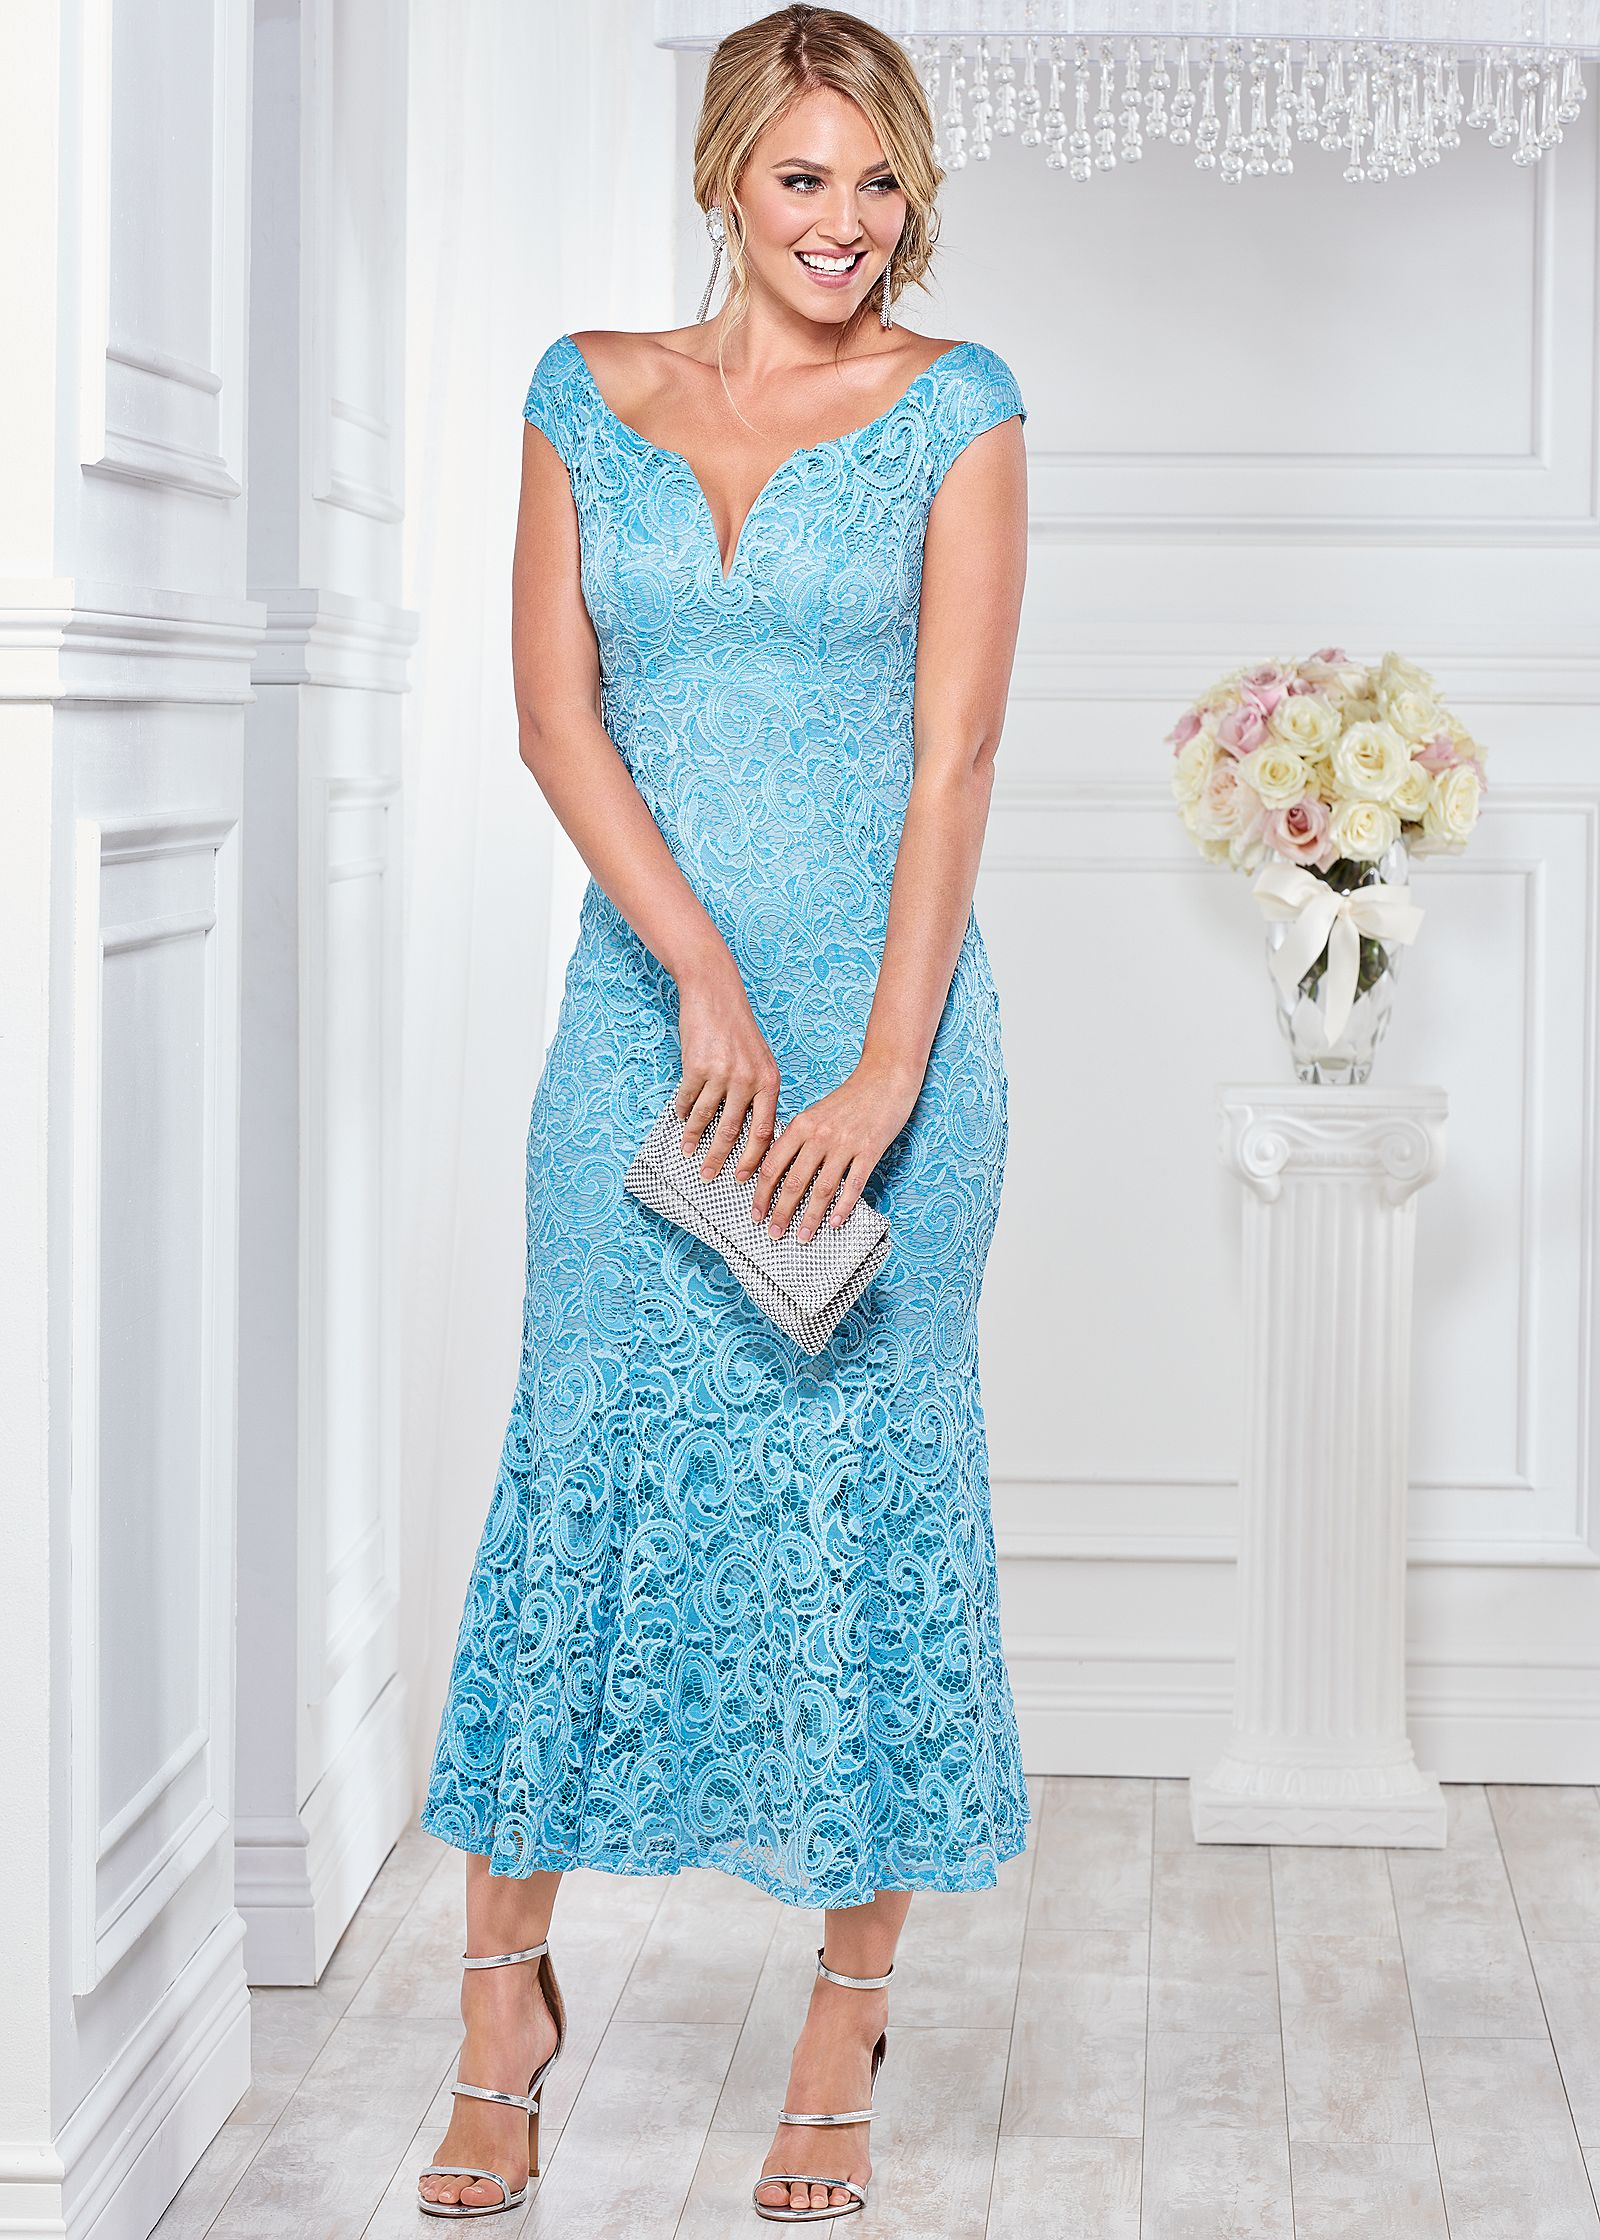 Turquoise Formal Dress